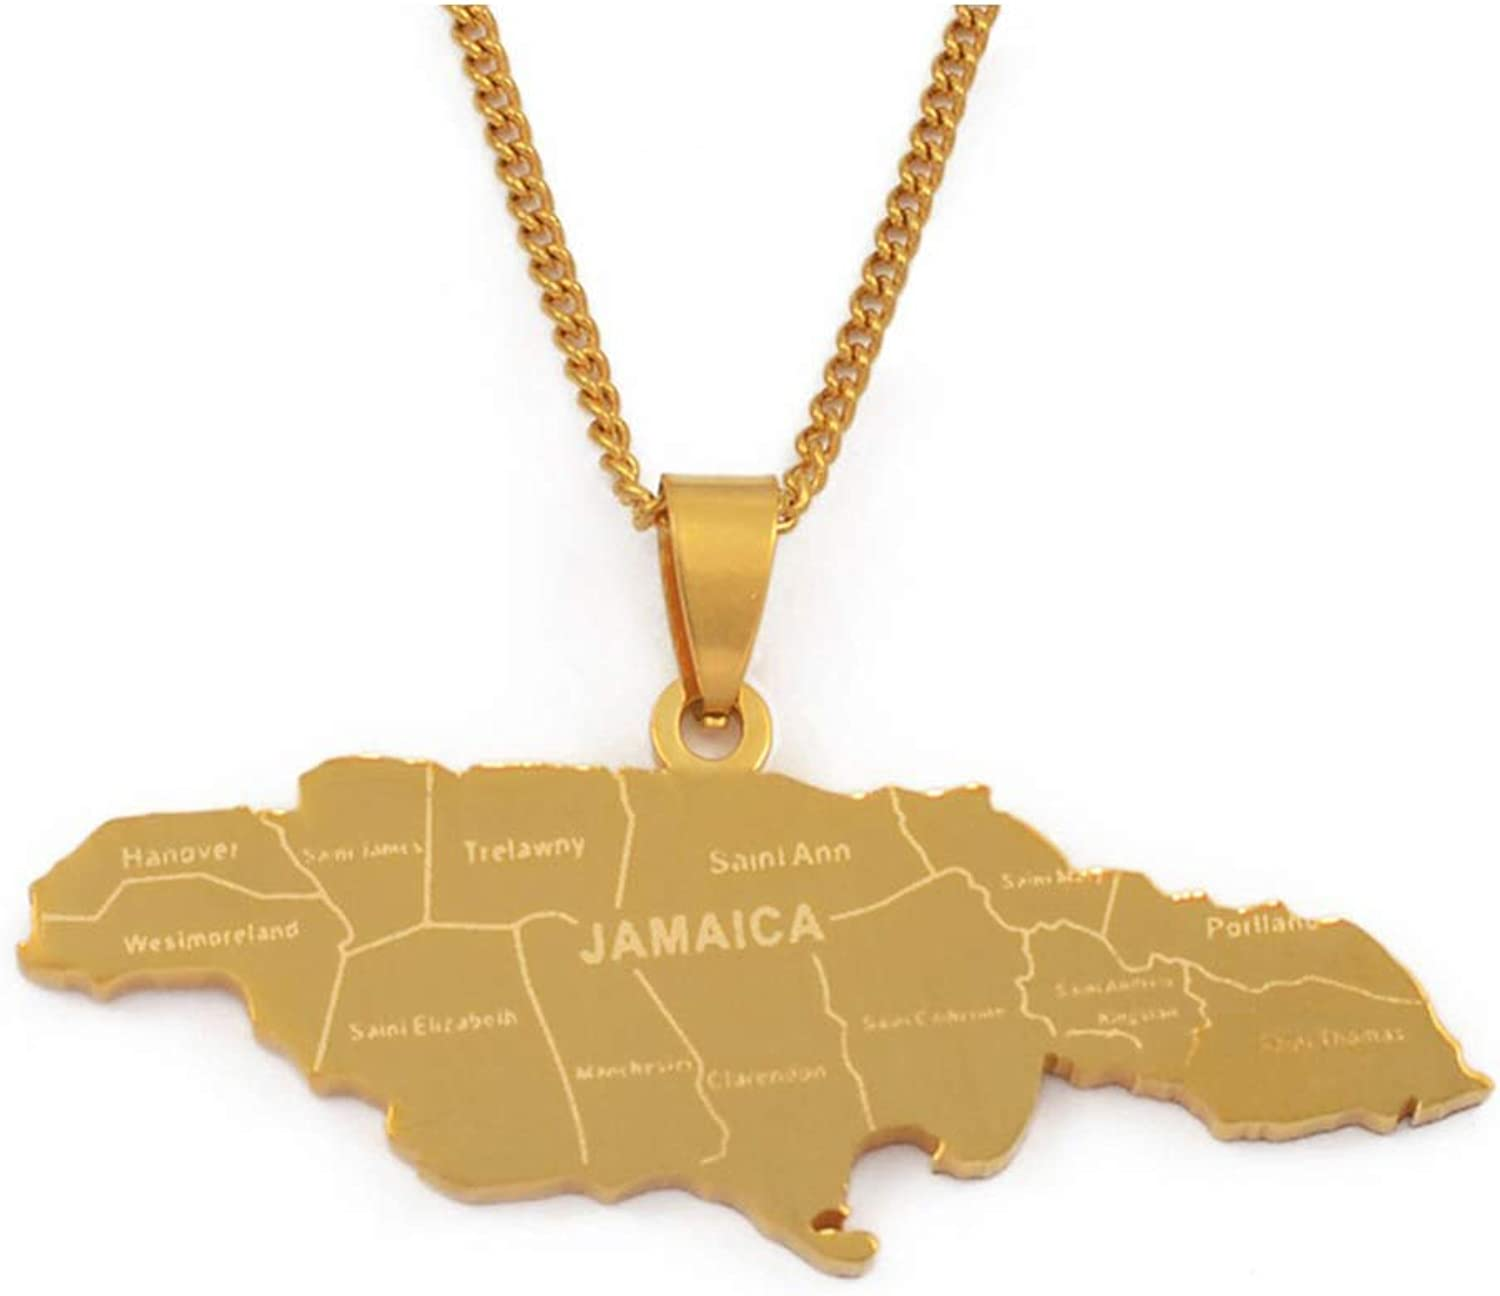 Life-Center-Store Map of Jamaica with City Pendant Necklaces for Women Men Stainless Steel Jamaica Maps Chains Jewelry Gifts